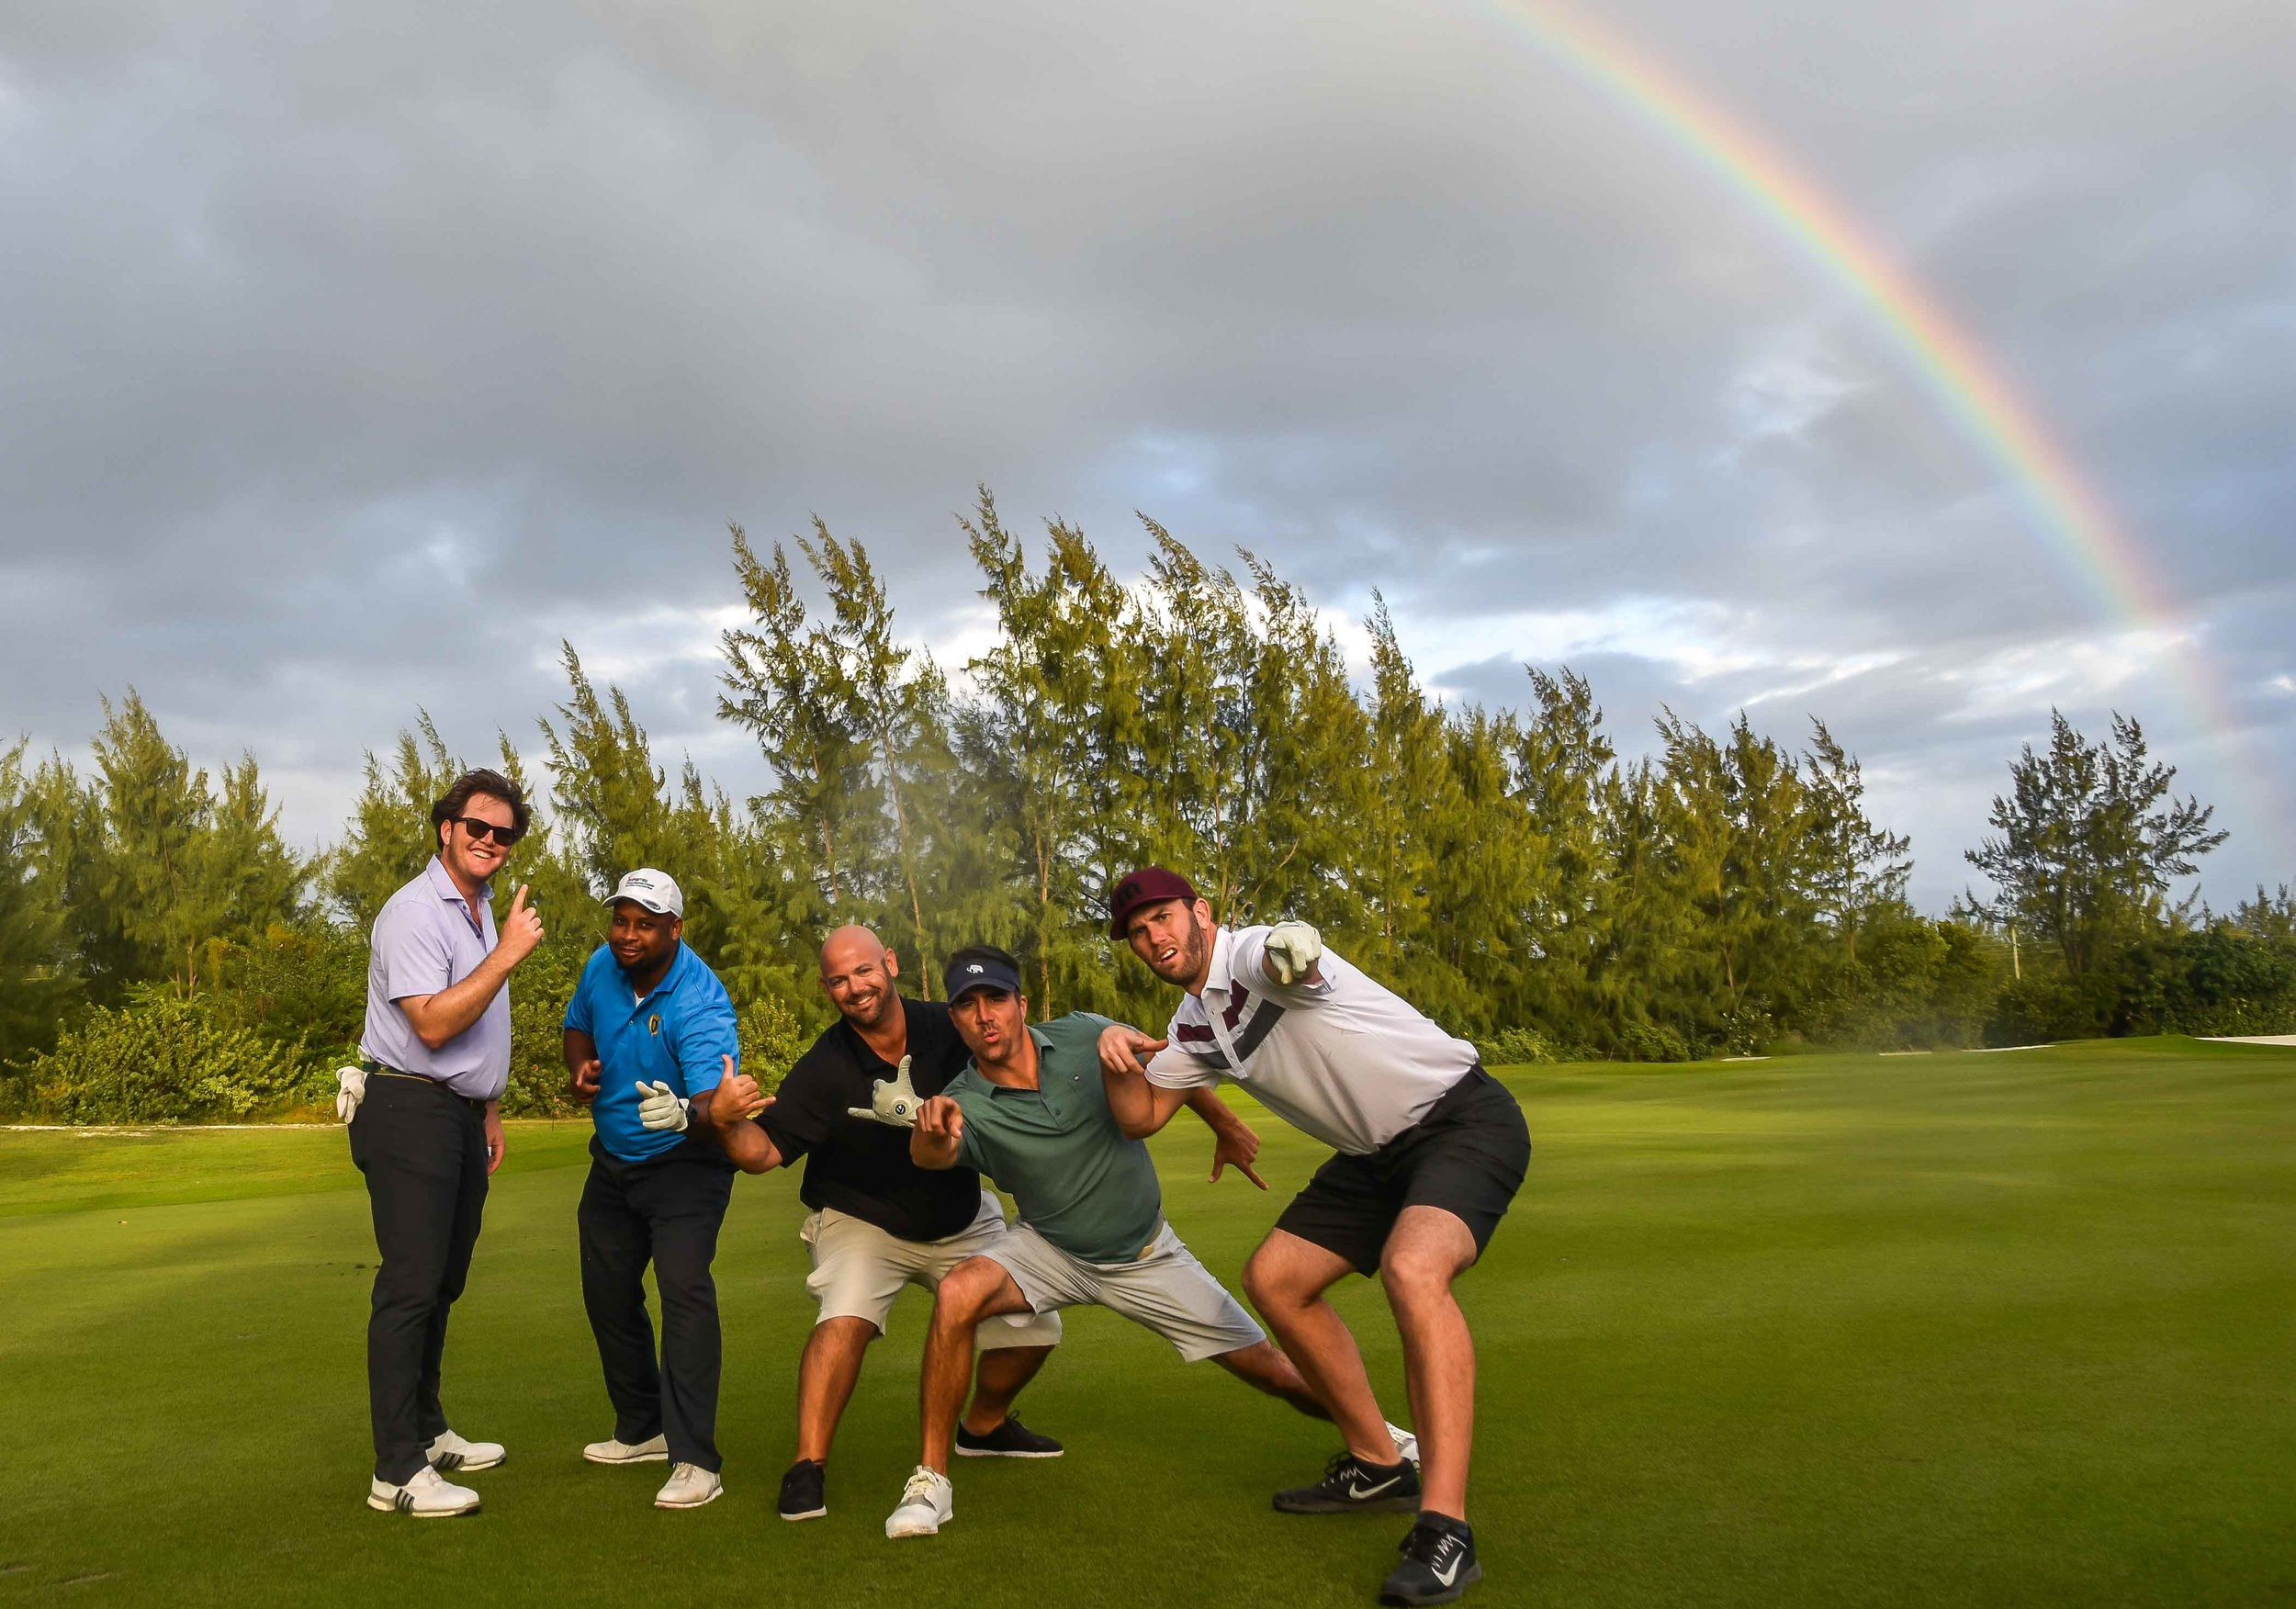 The rainbow shines down on the world's greatest Pro-Am team.